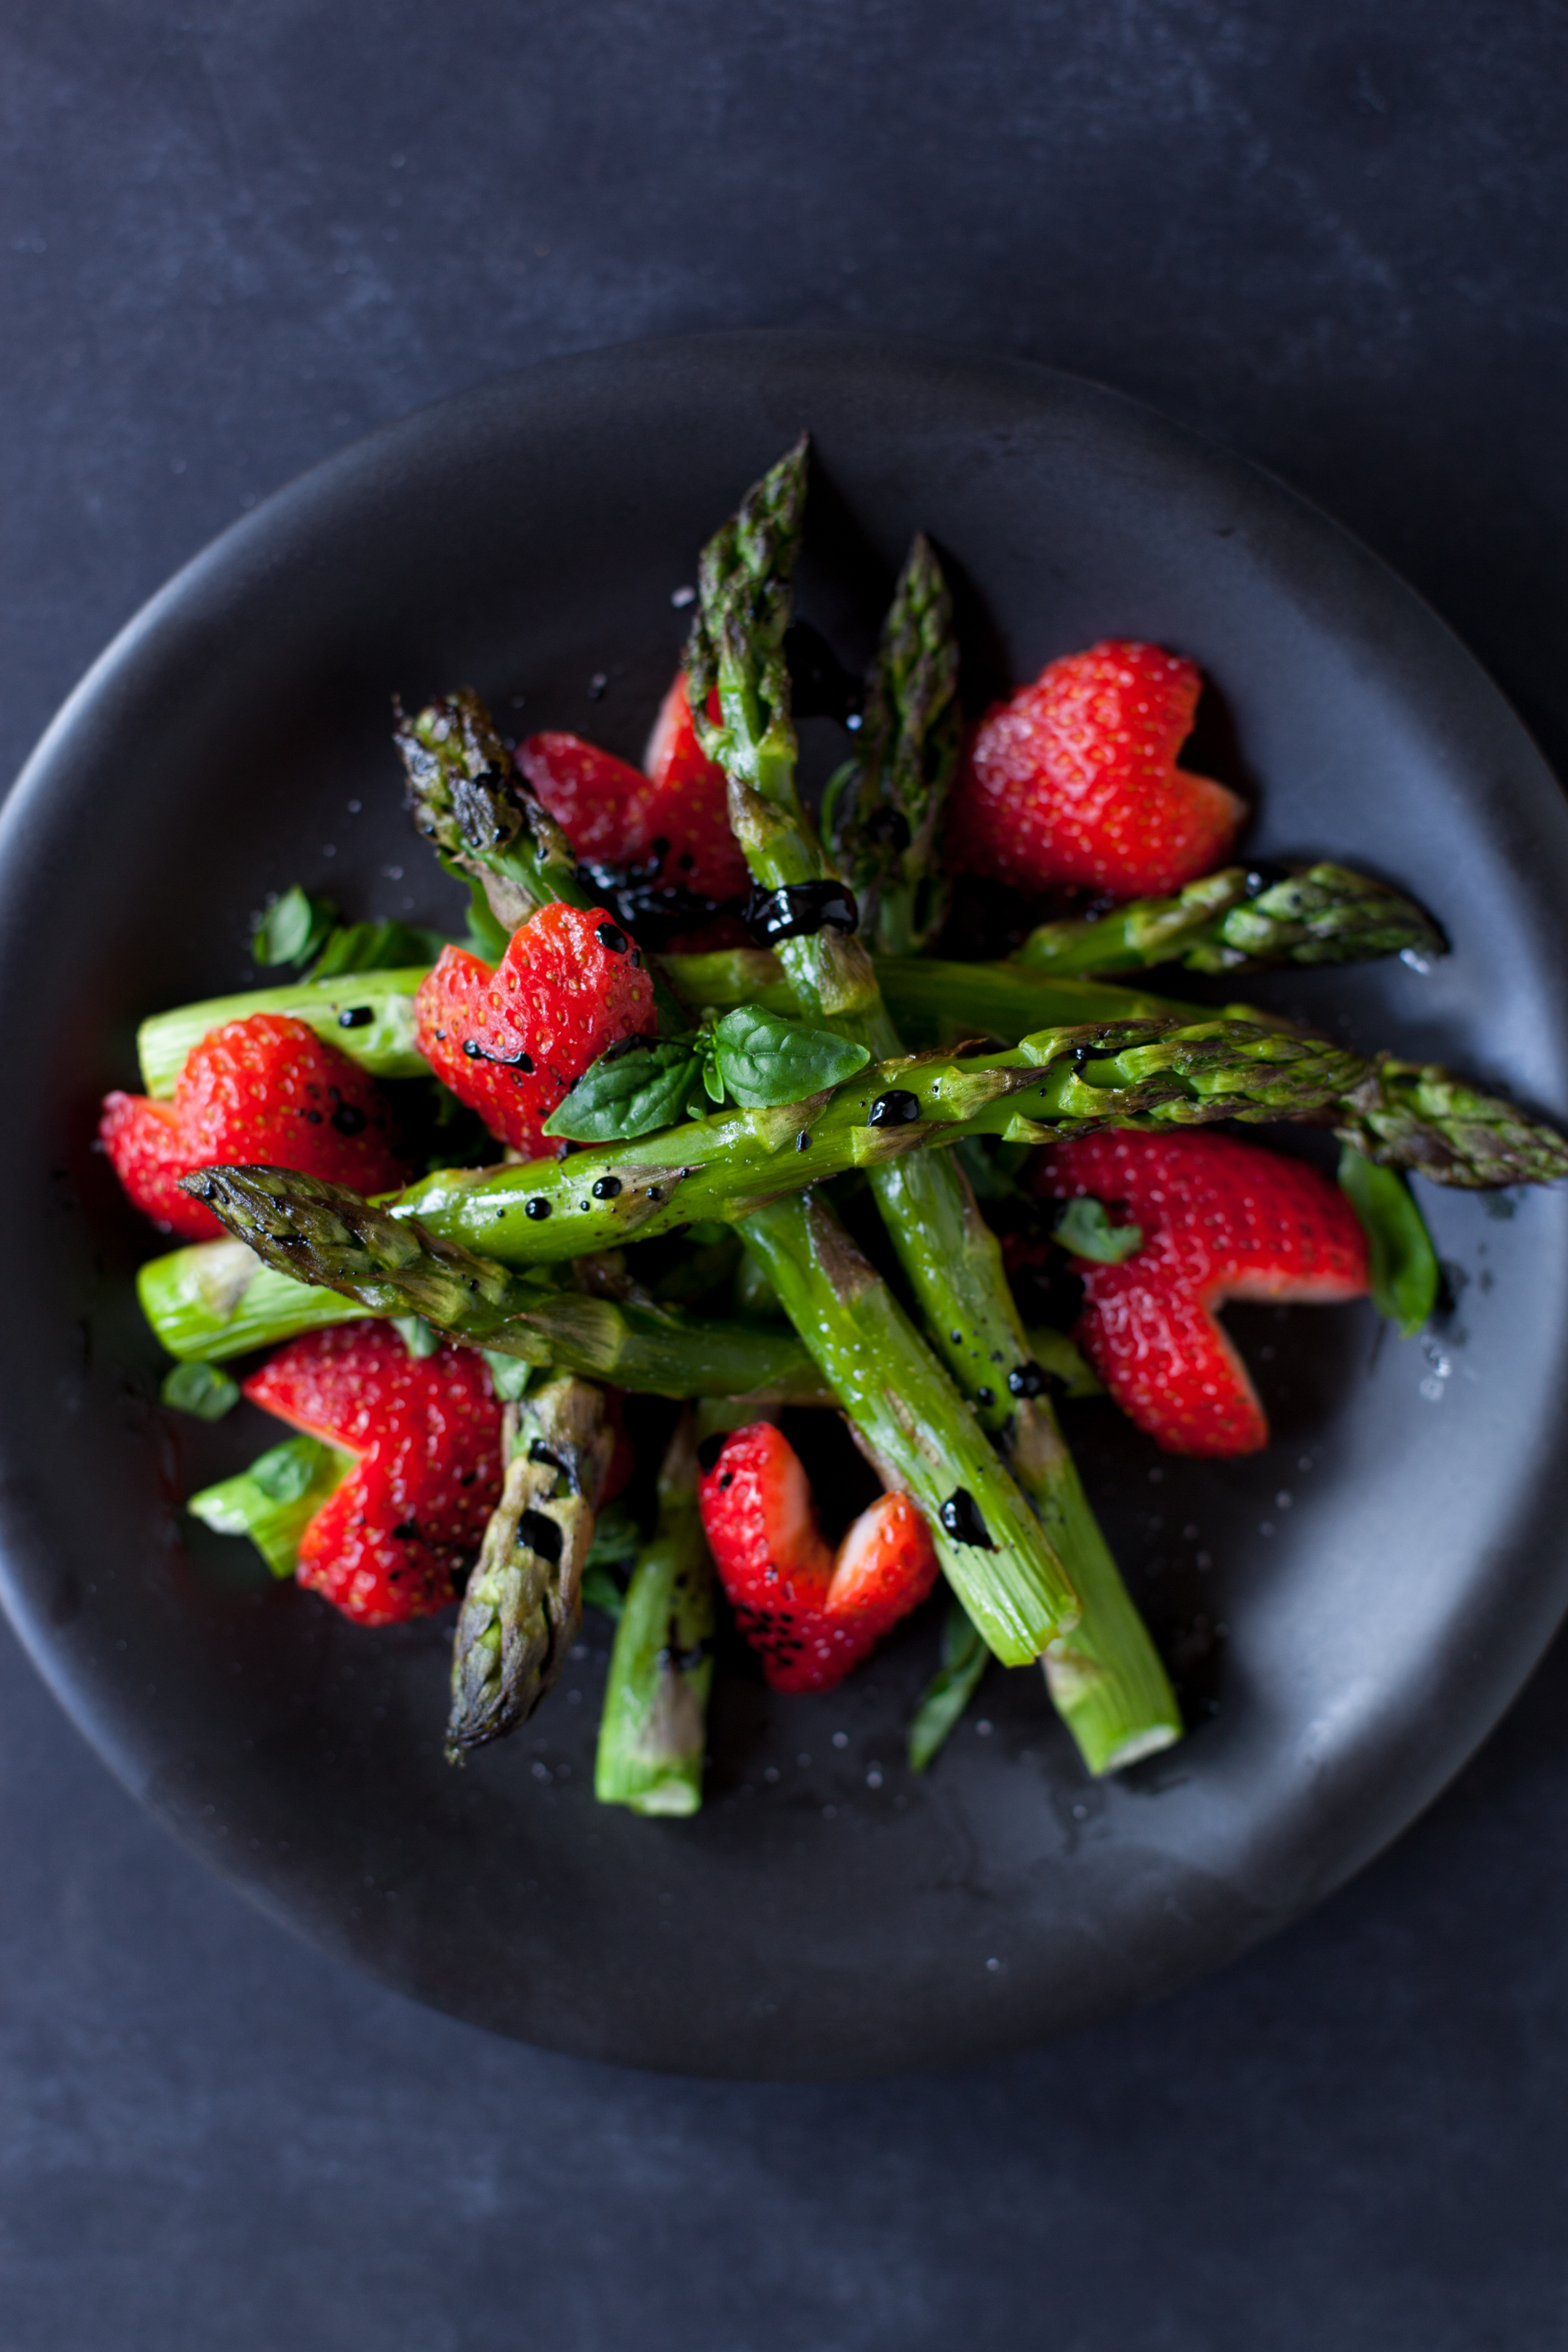 A Fun Colorful Asparagus Side Dish